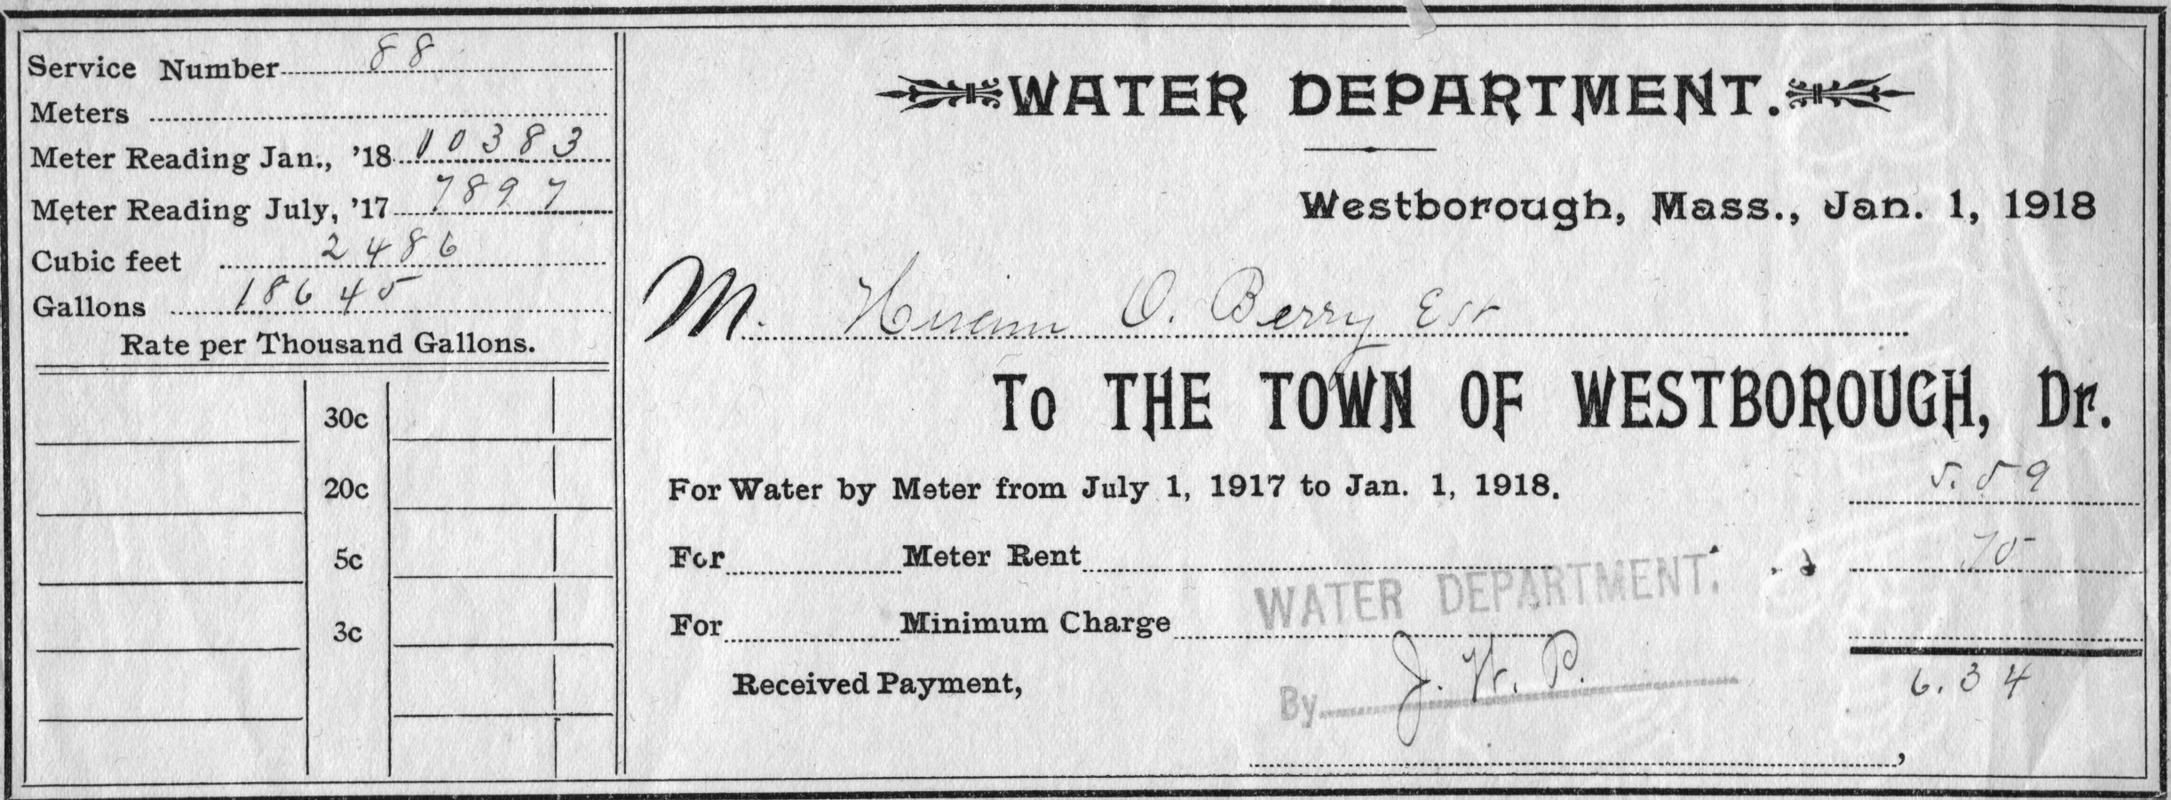 Westborough Water Department Bill - Digital Commonwealth